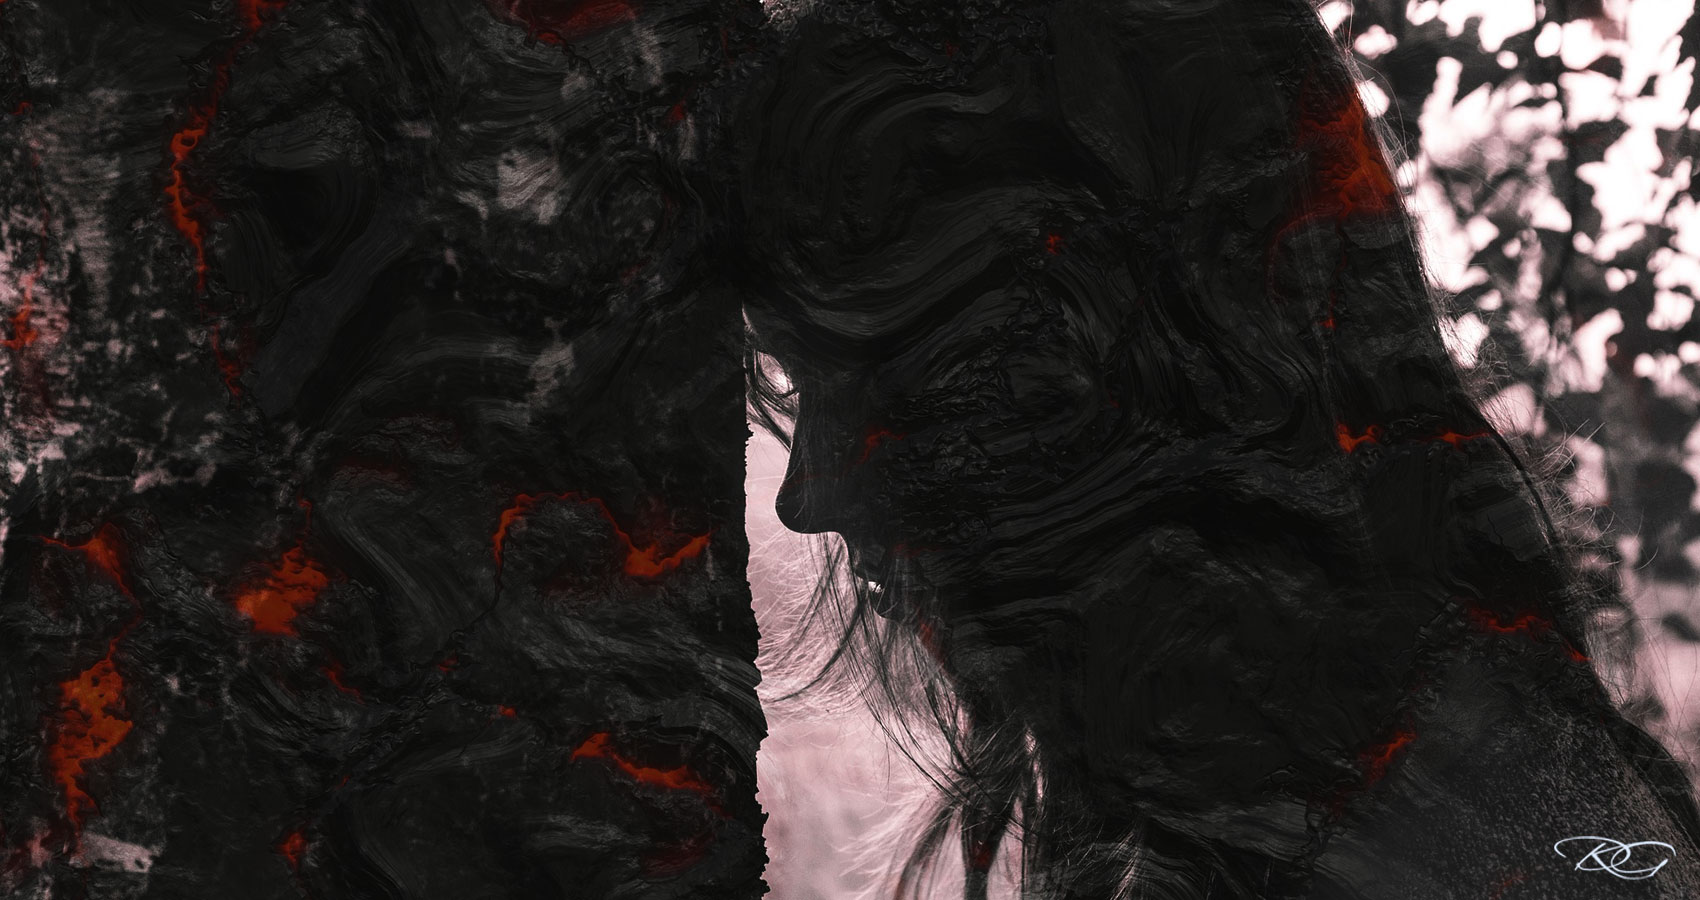 Lava, a poem written by Megha Sood at Spillwords.com